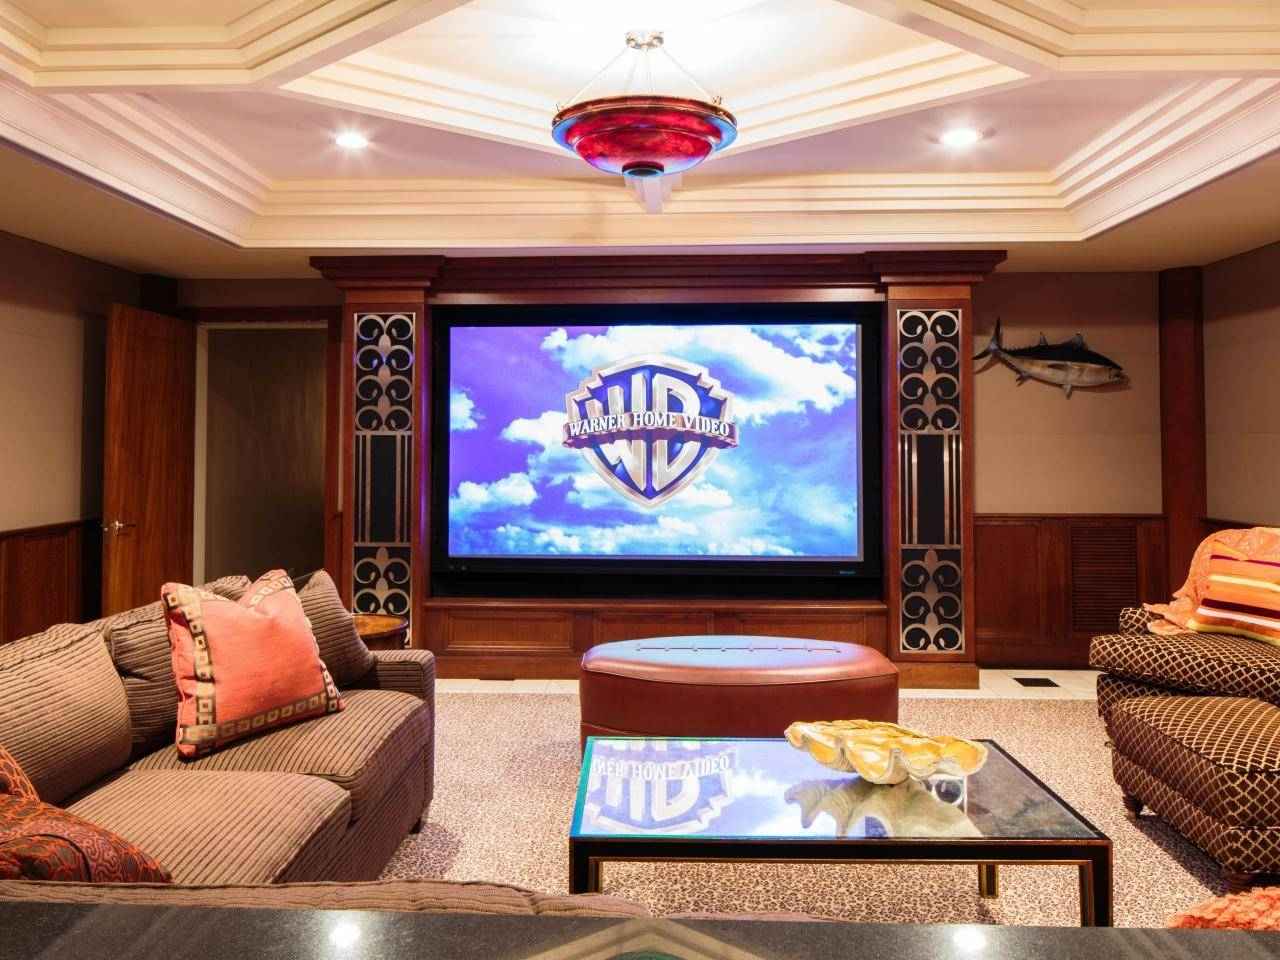 Living Room Theater: Smart Living Room Theater Decor Ideas Living with regard to Theater Room Sofas (Image 21 of 30)